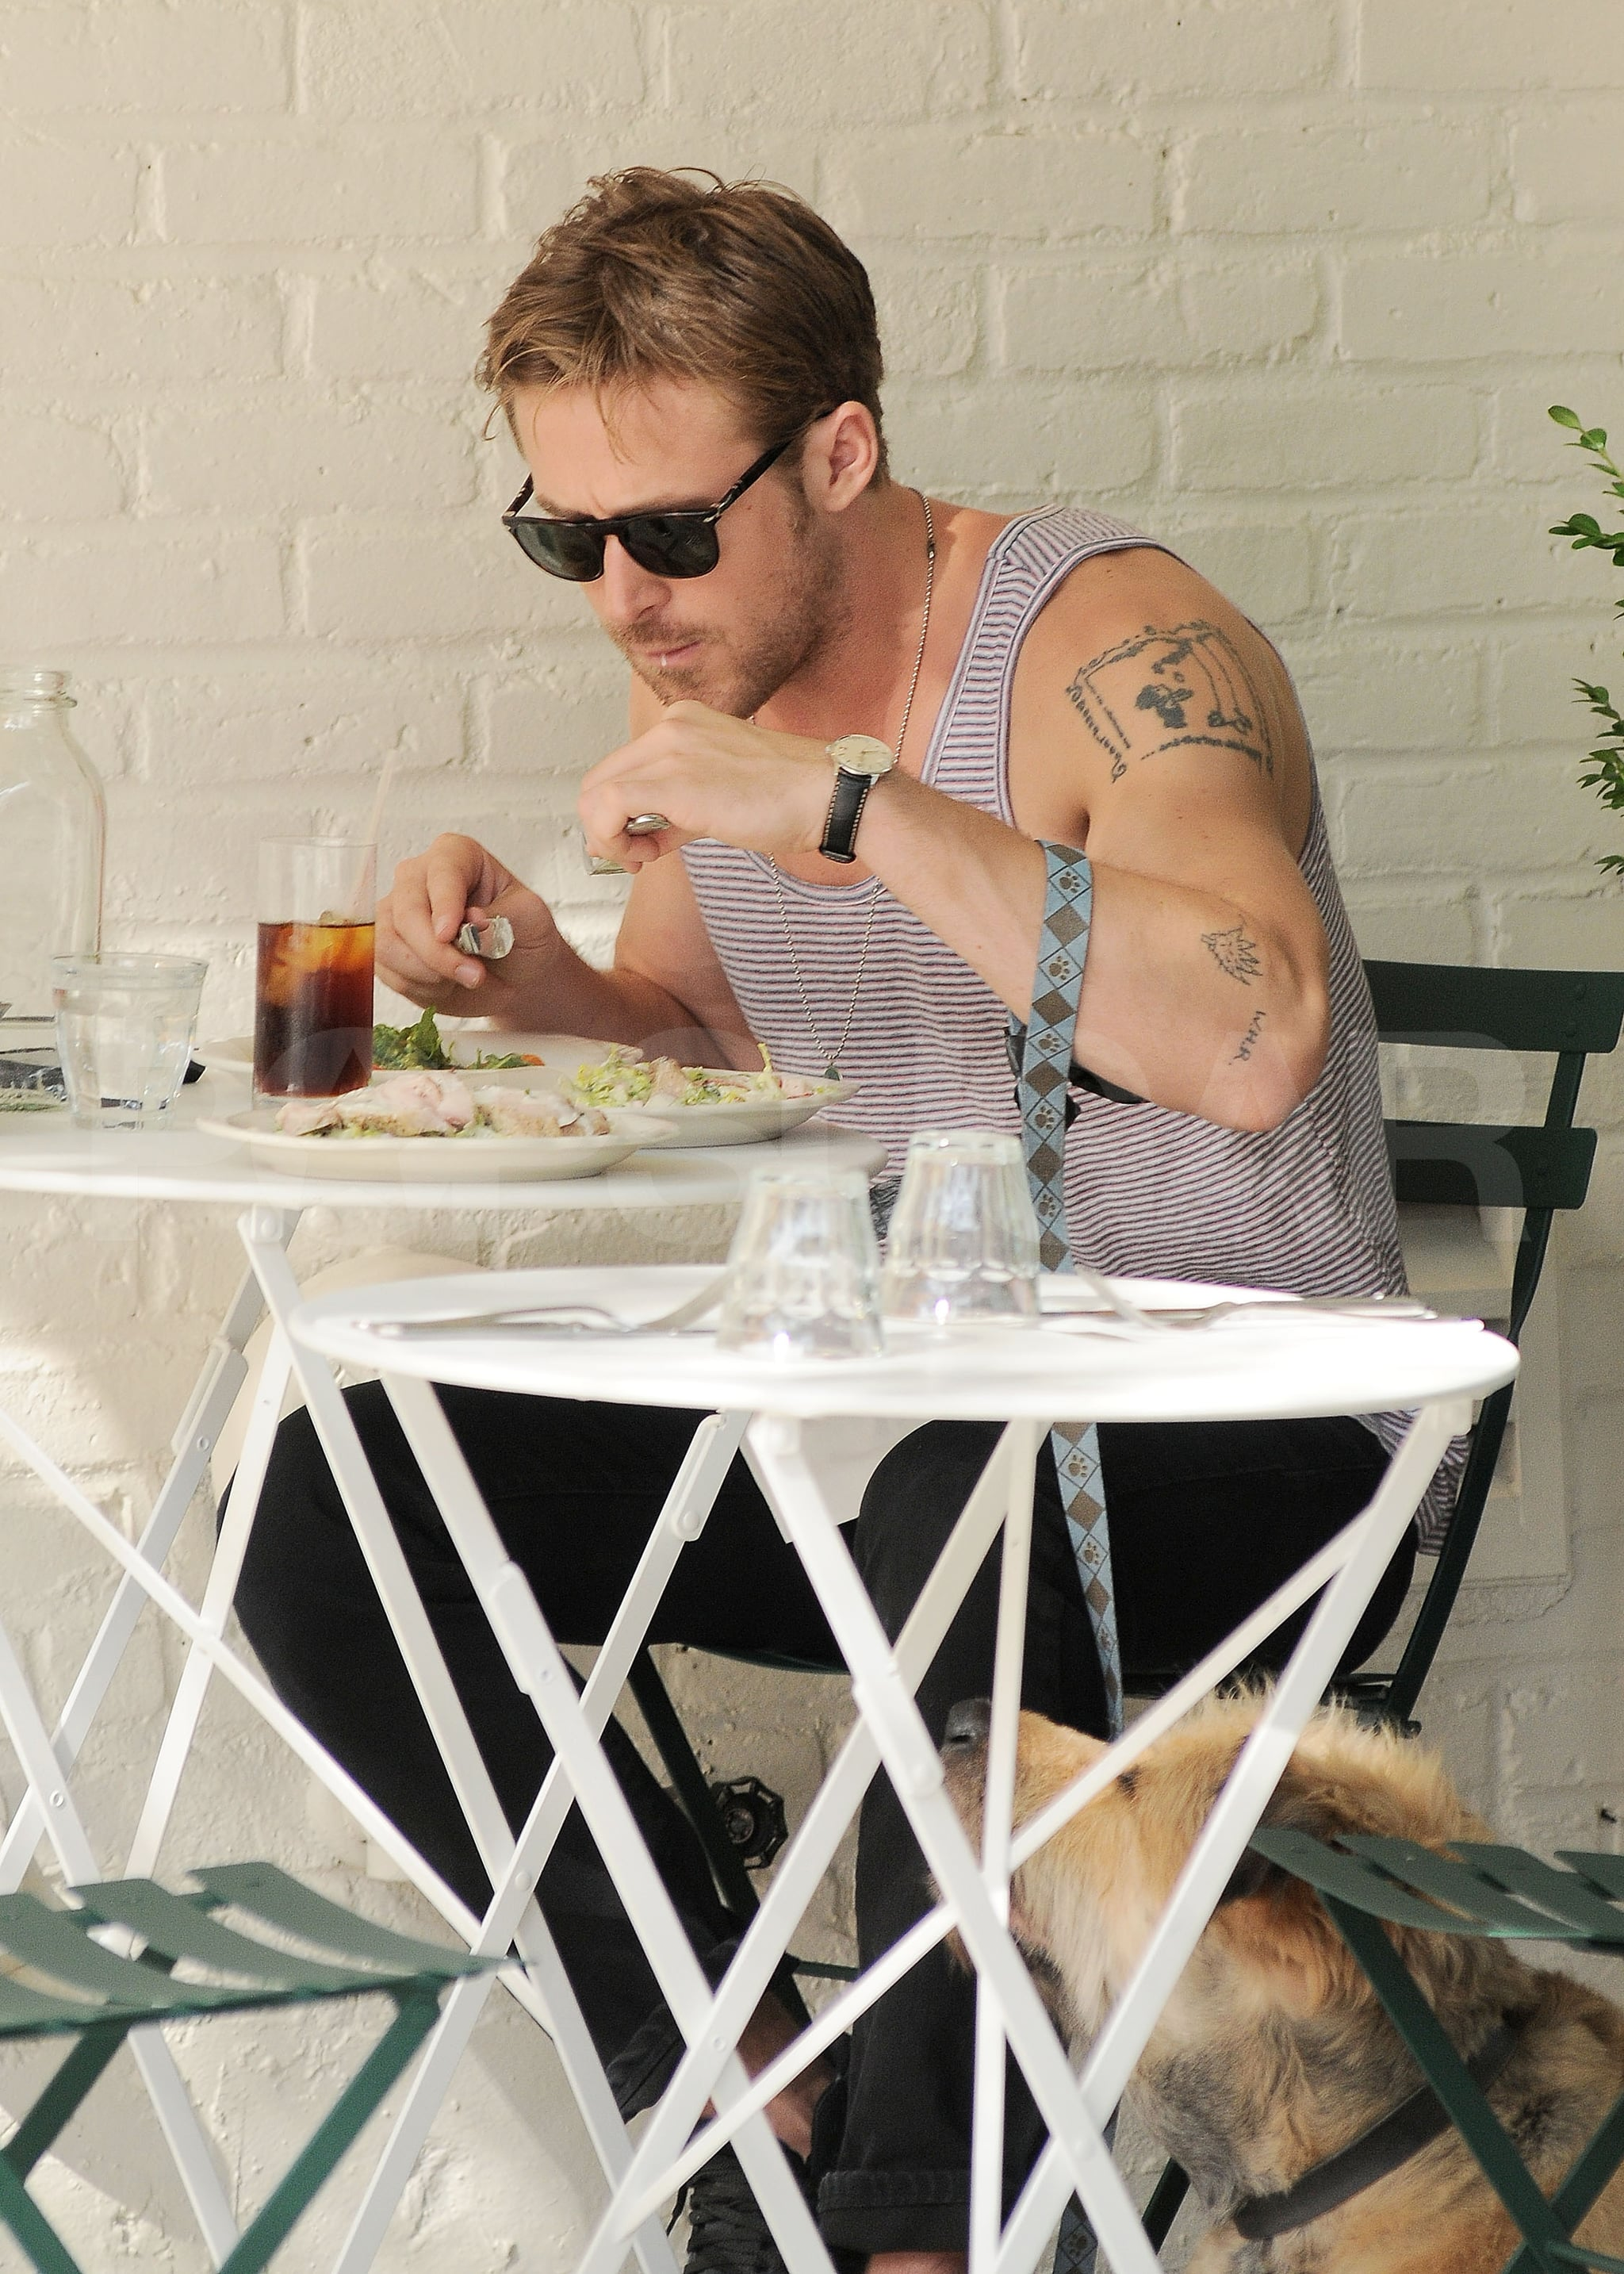 Ryan Gosling at Feels in NYC.